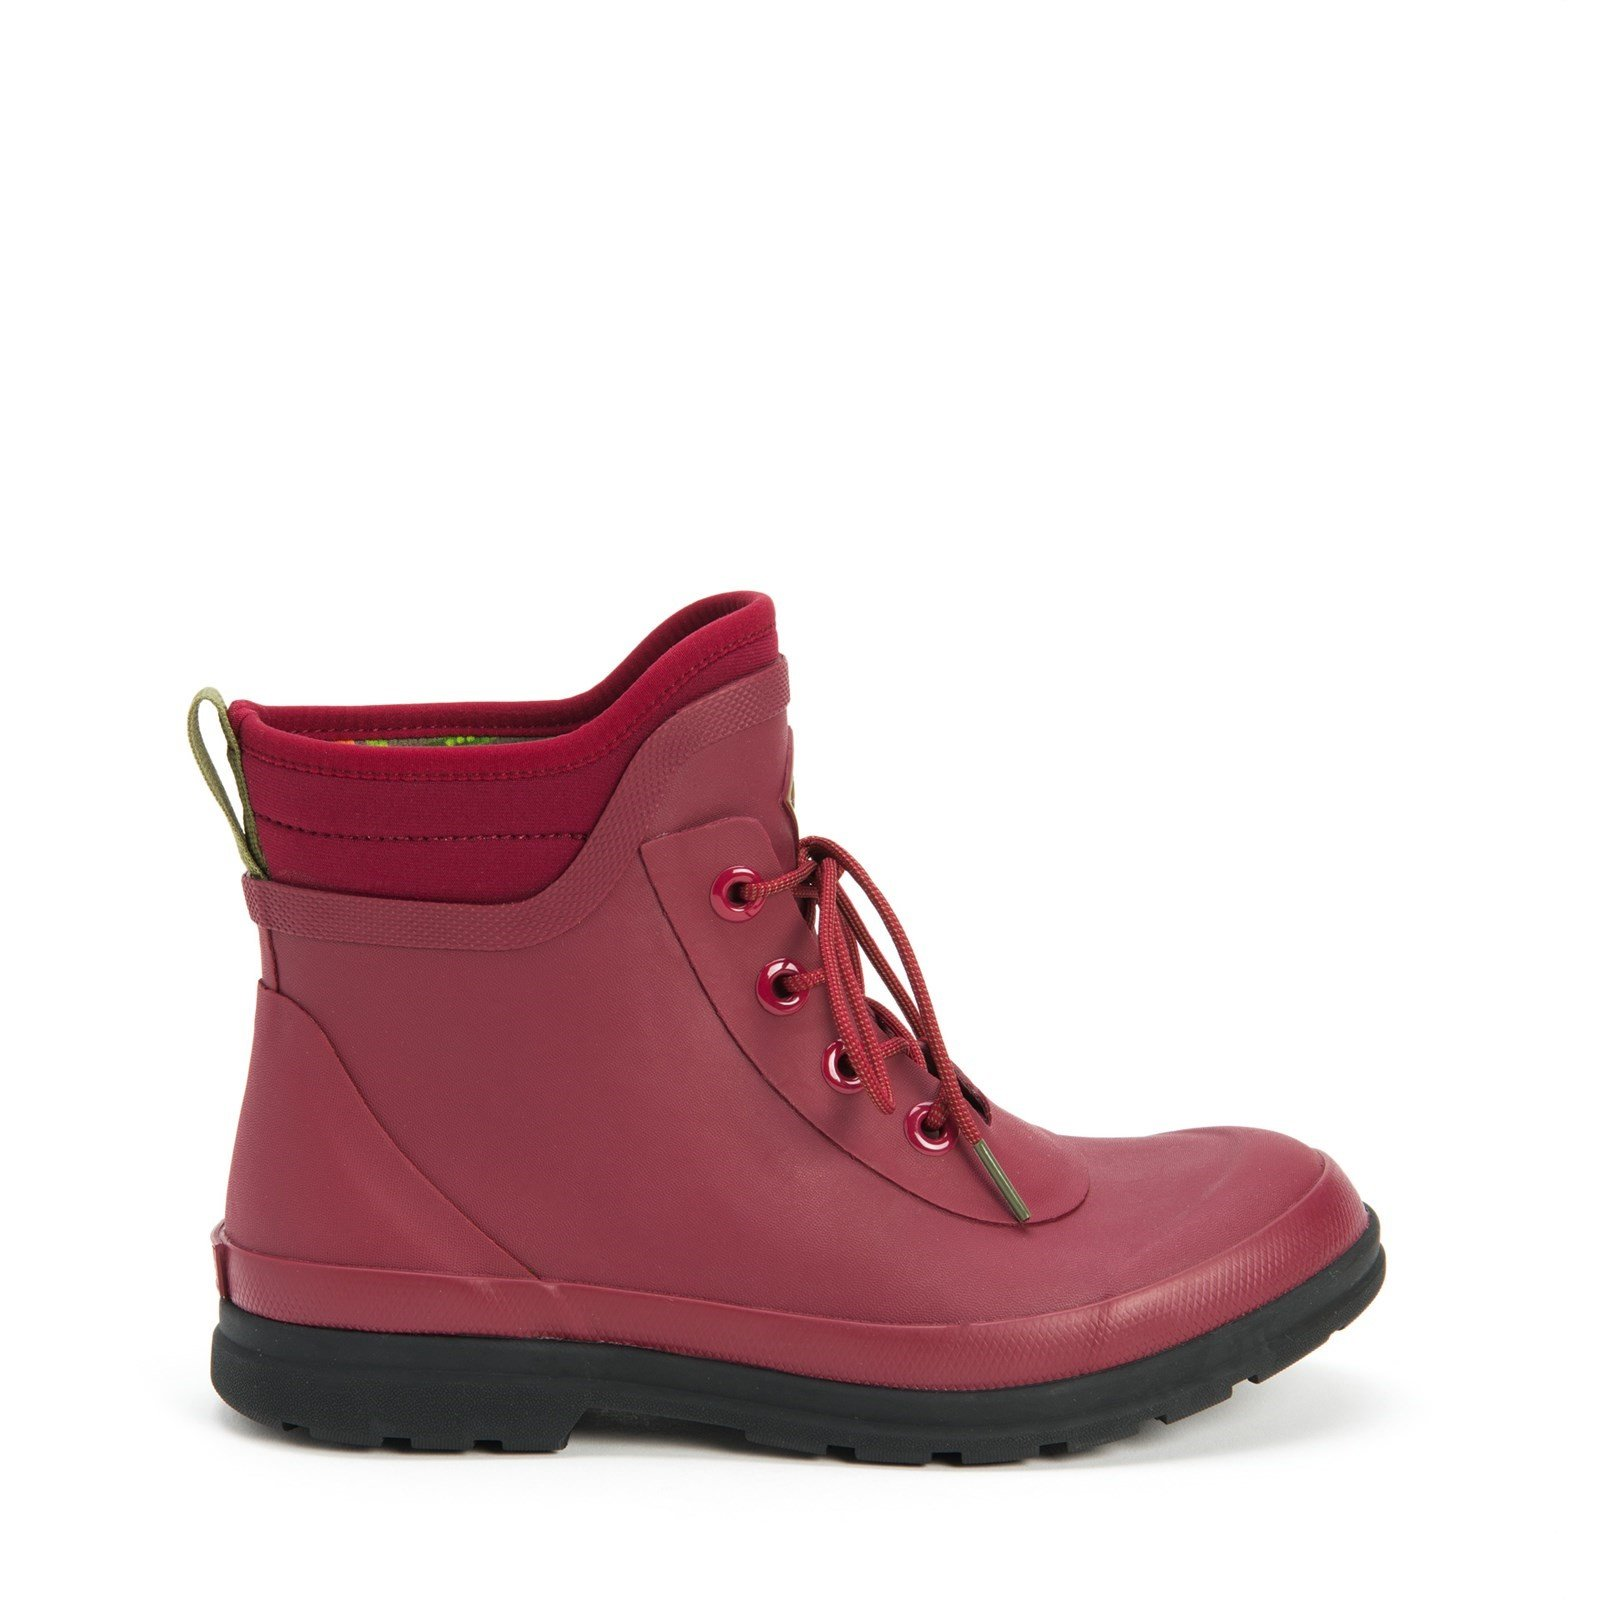 Muck Boots Women's Originals Lace Up Ankle Boot Various Colours 30079 - Berry 8